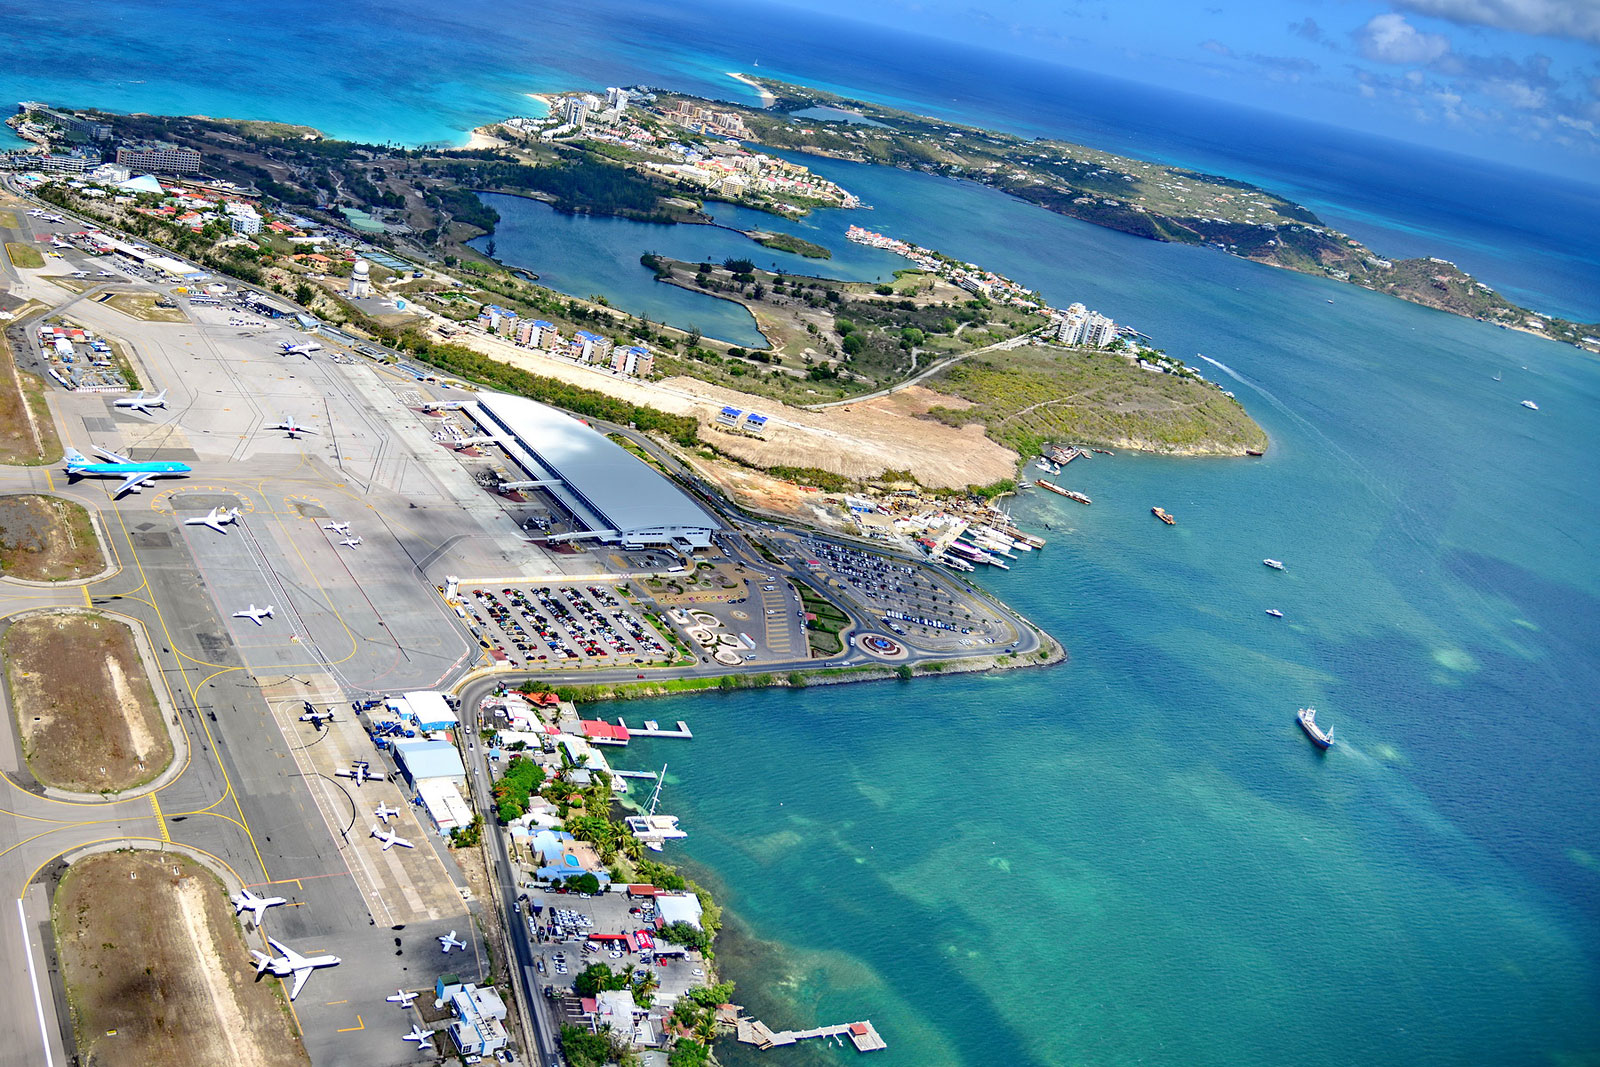 The Princess Juliana International Airport taken from an inbound photography chopper just after KLM's B747 (KL785) from Amsterdam has landed.